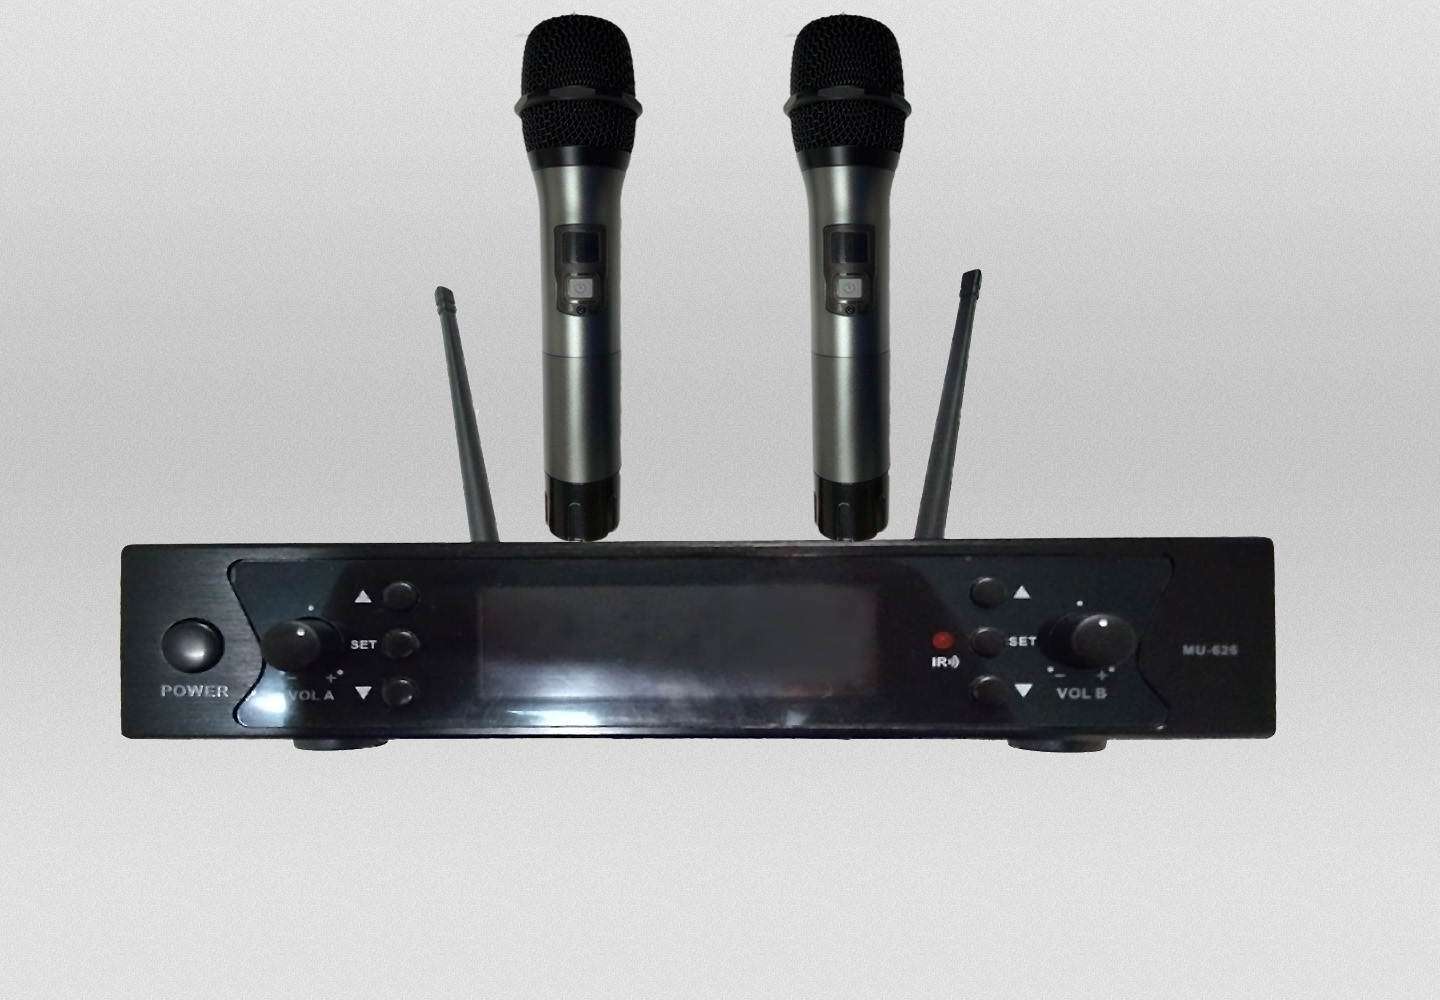 UHF 900 MHz Wireless Microphone EX 7